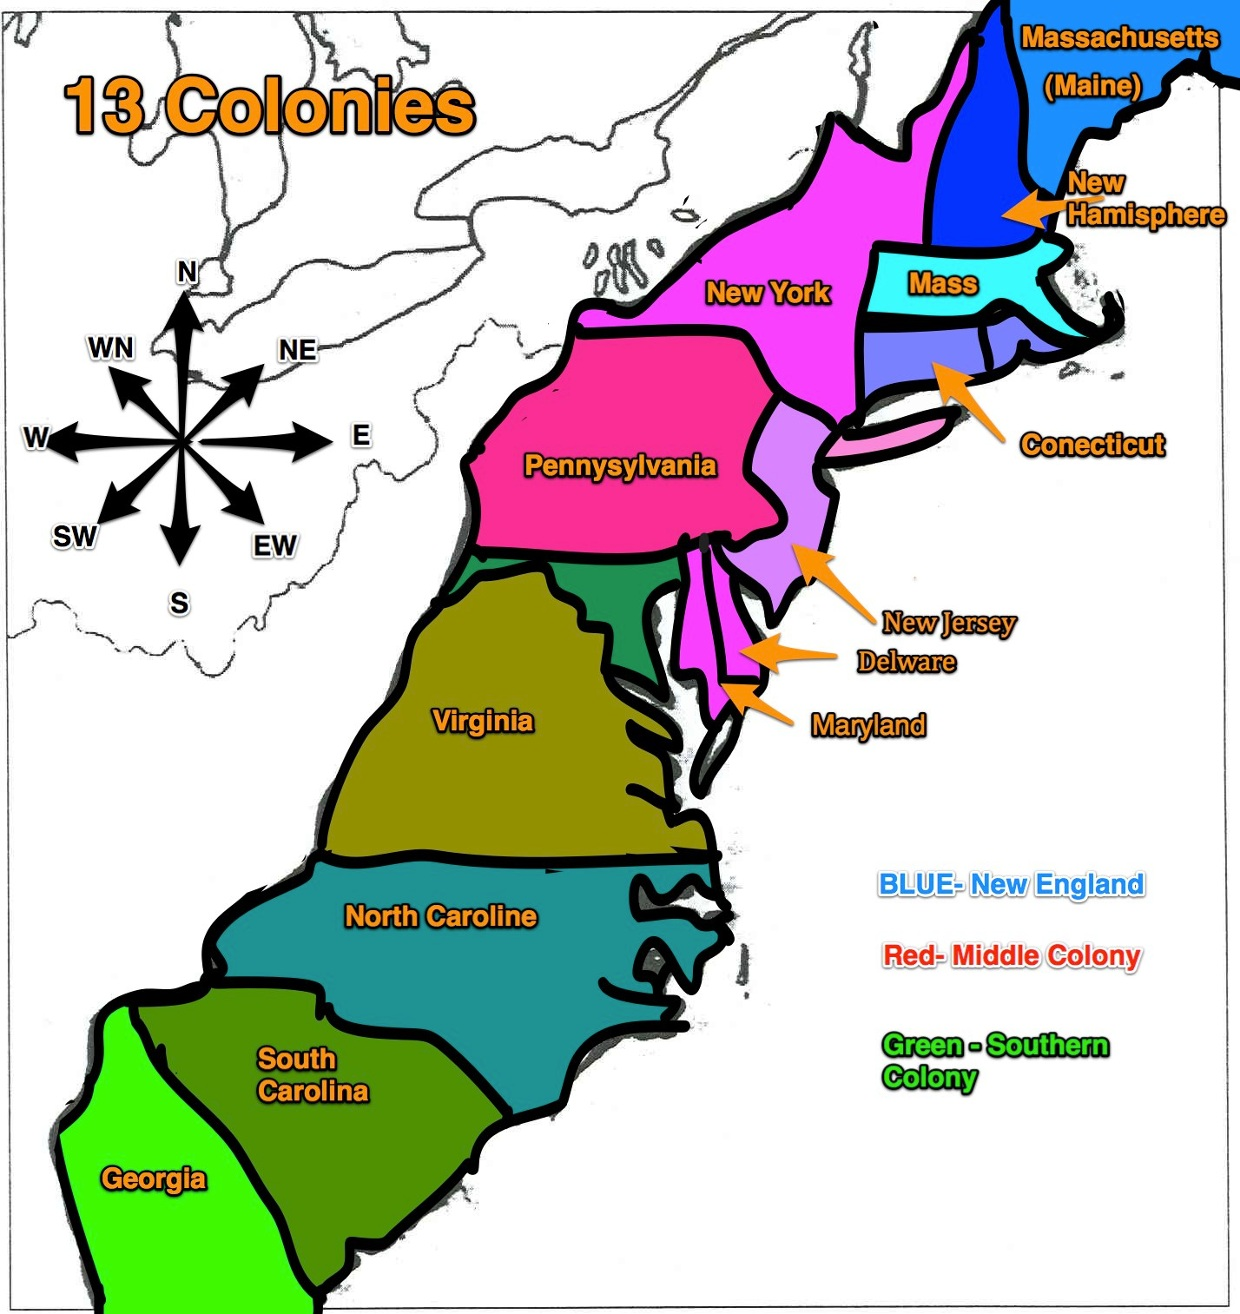 the colonies Albany plan of union, 1754 the albany plan of union was a plan to place the british north american colonies under a more centralized government.